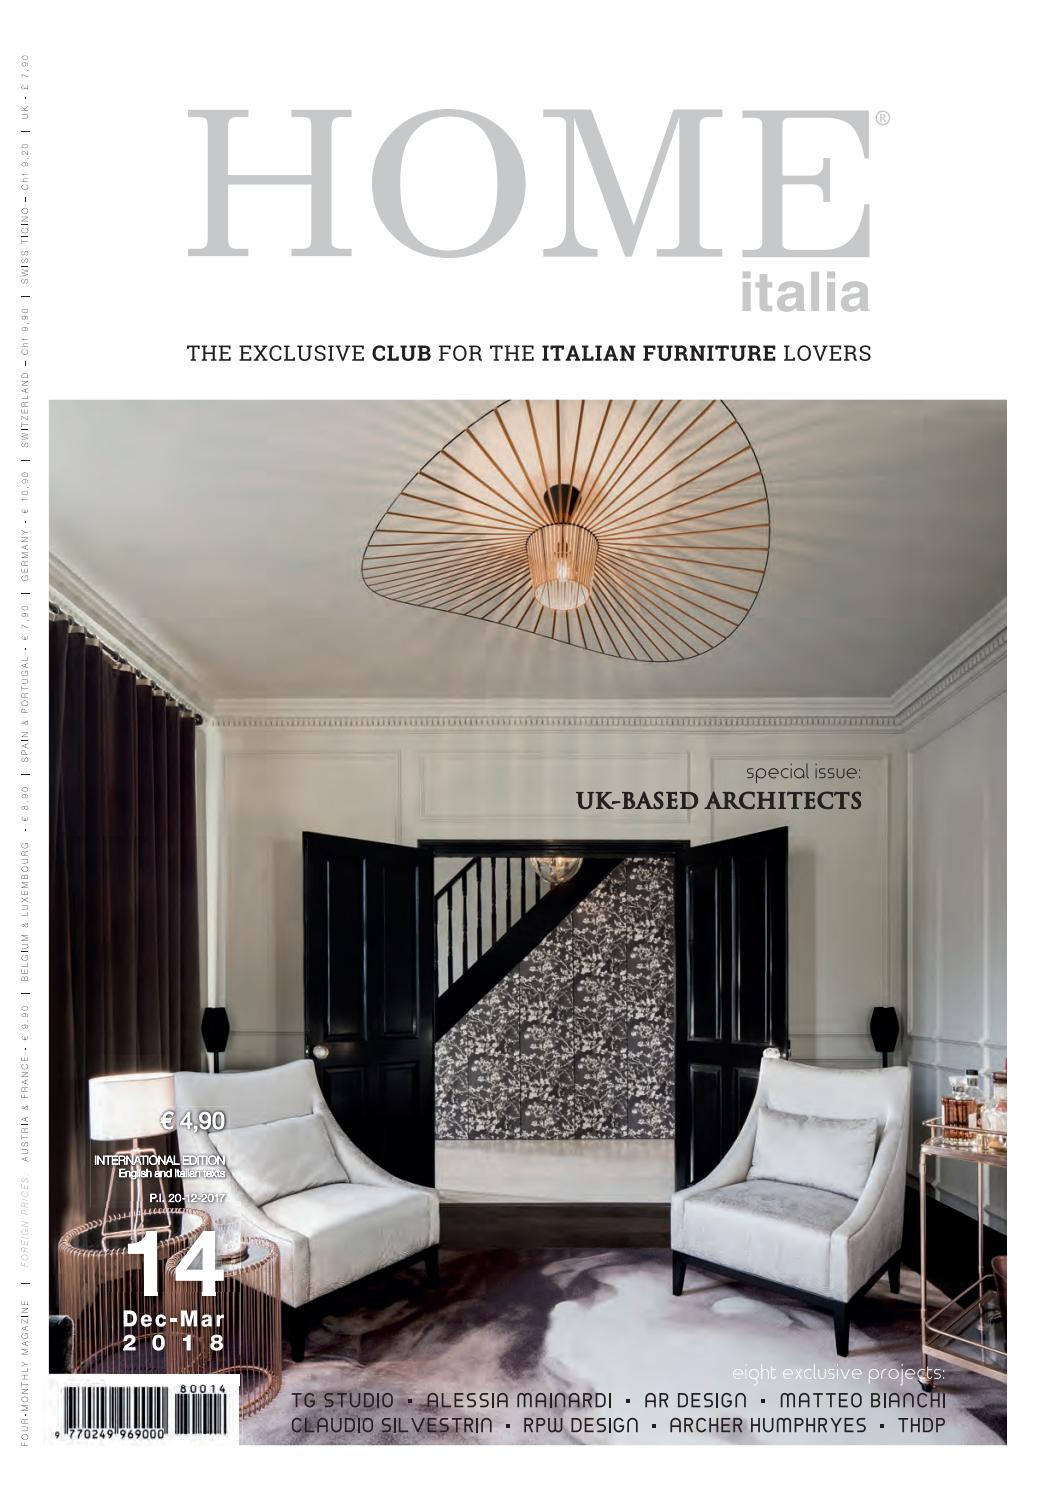 Ama Cucine Firenze home italia 14th edition by home italia - issuu